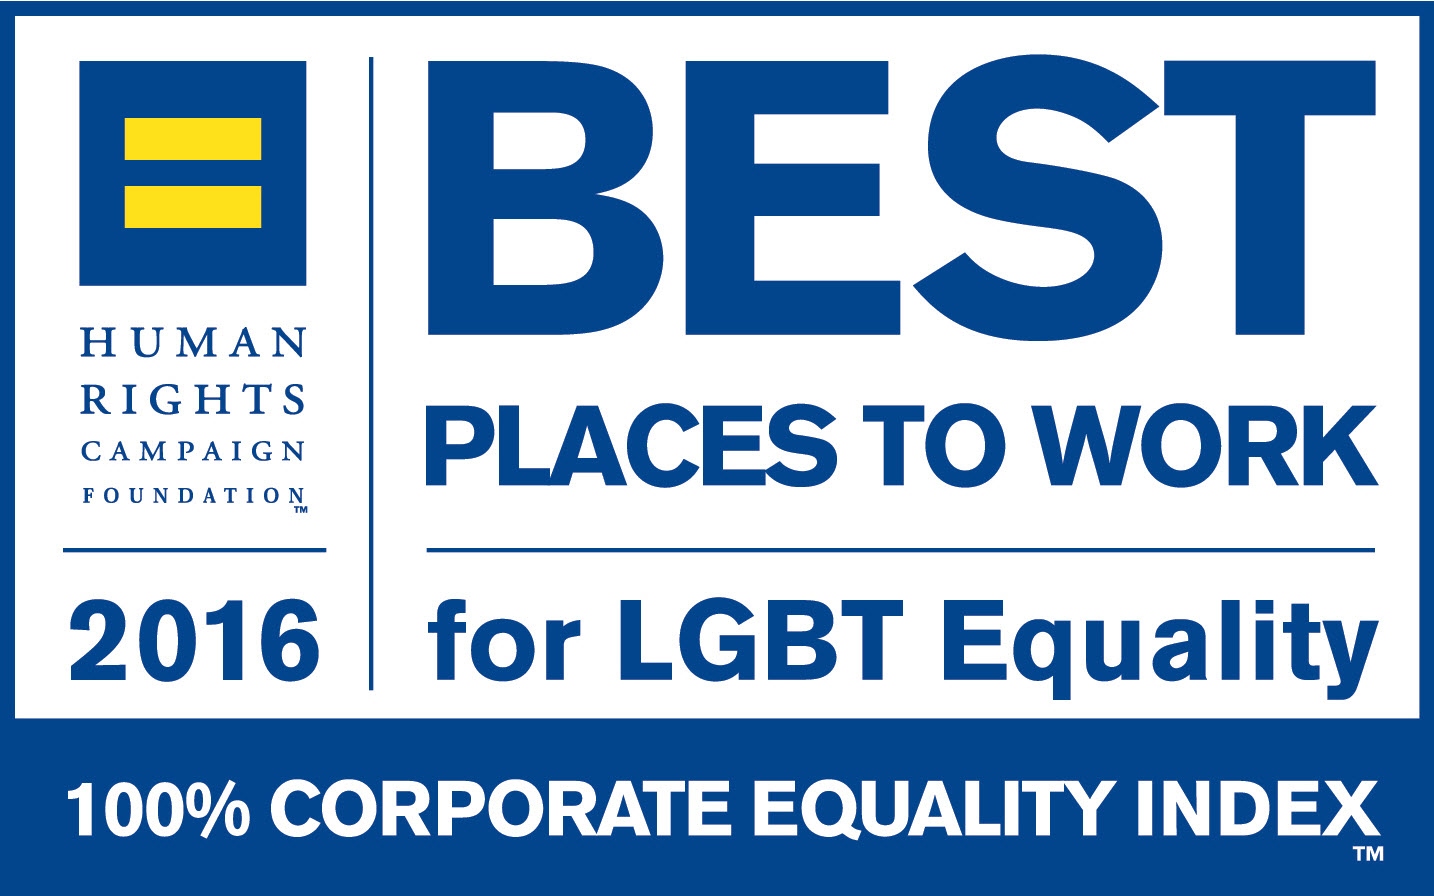 100% Corporate Equality Index Best Places To Work For LGBT Equality 2016